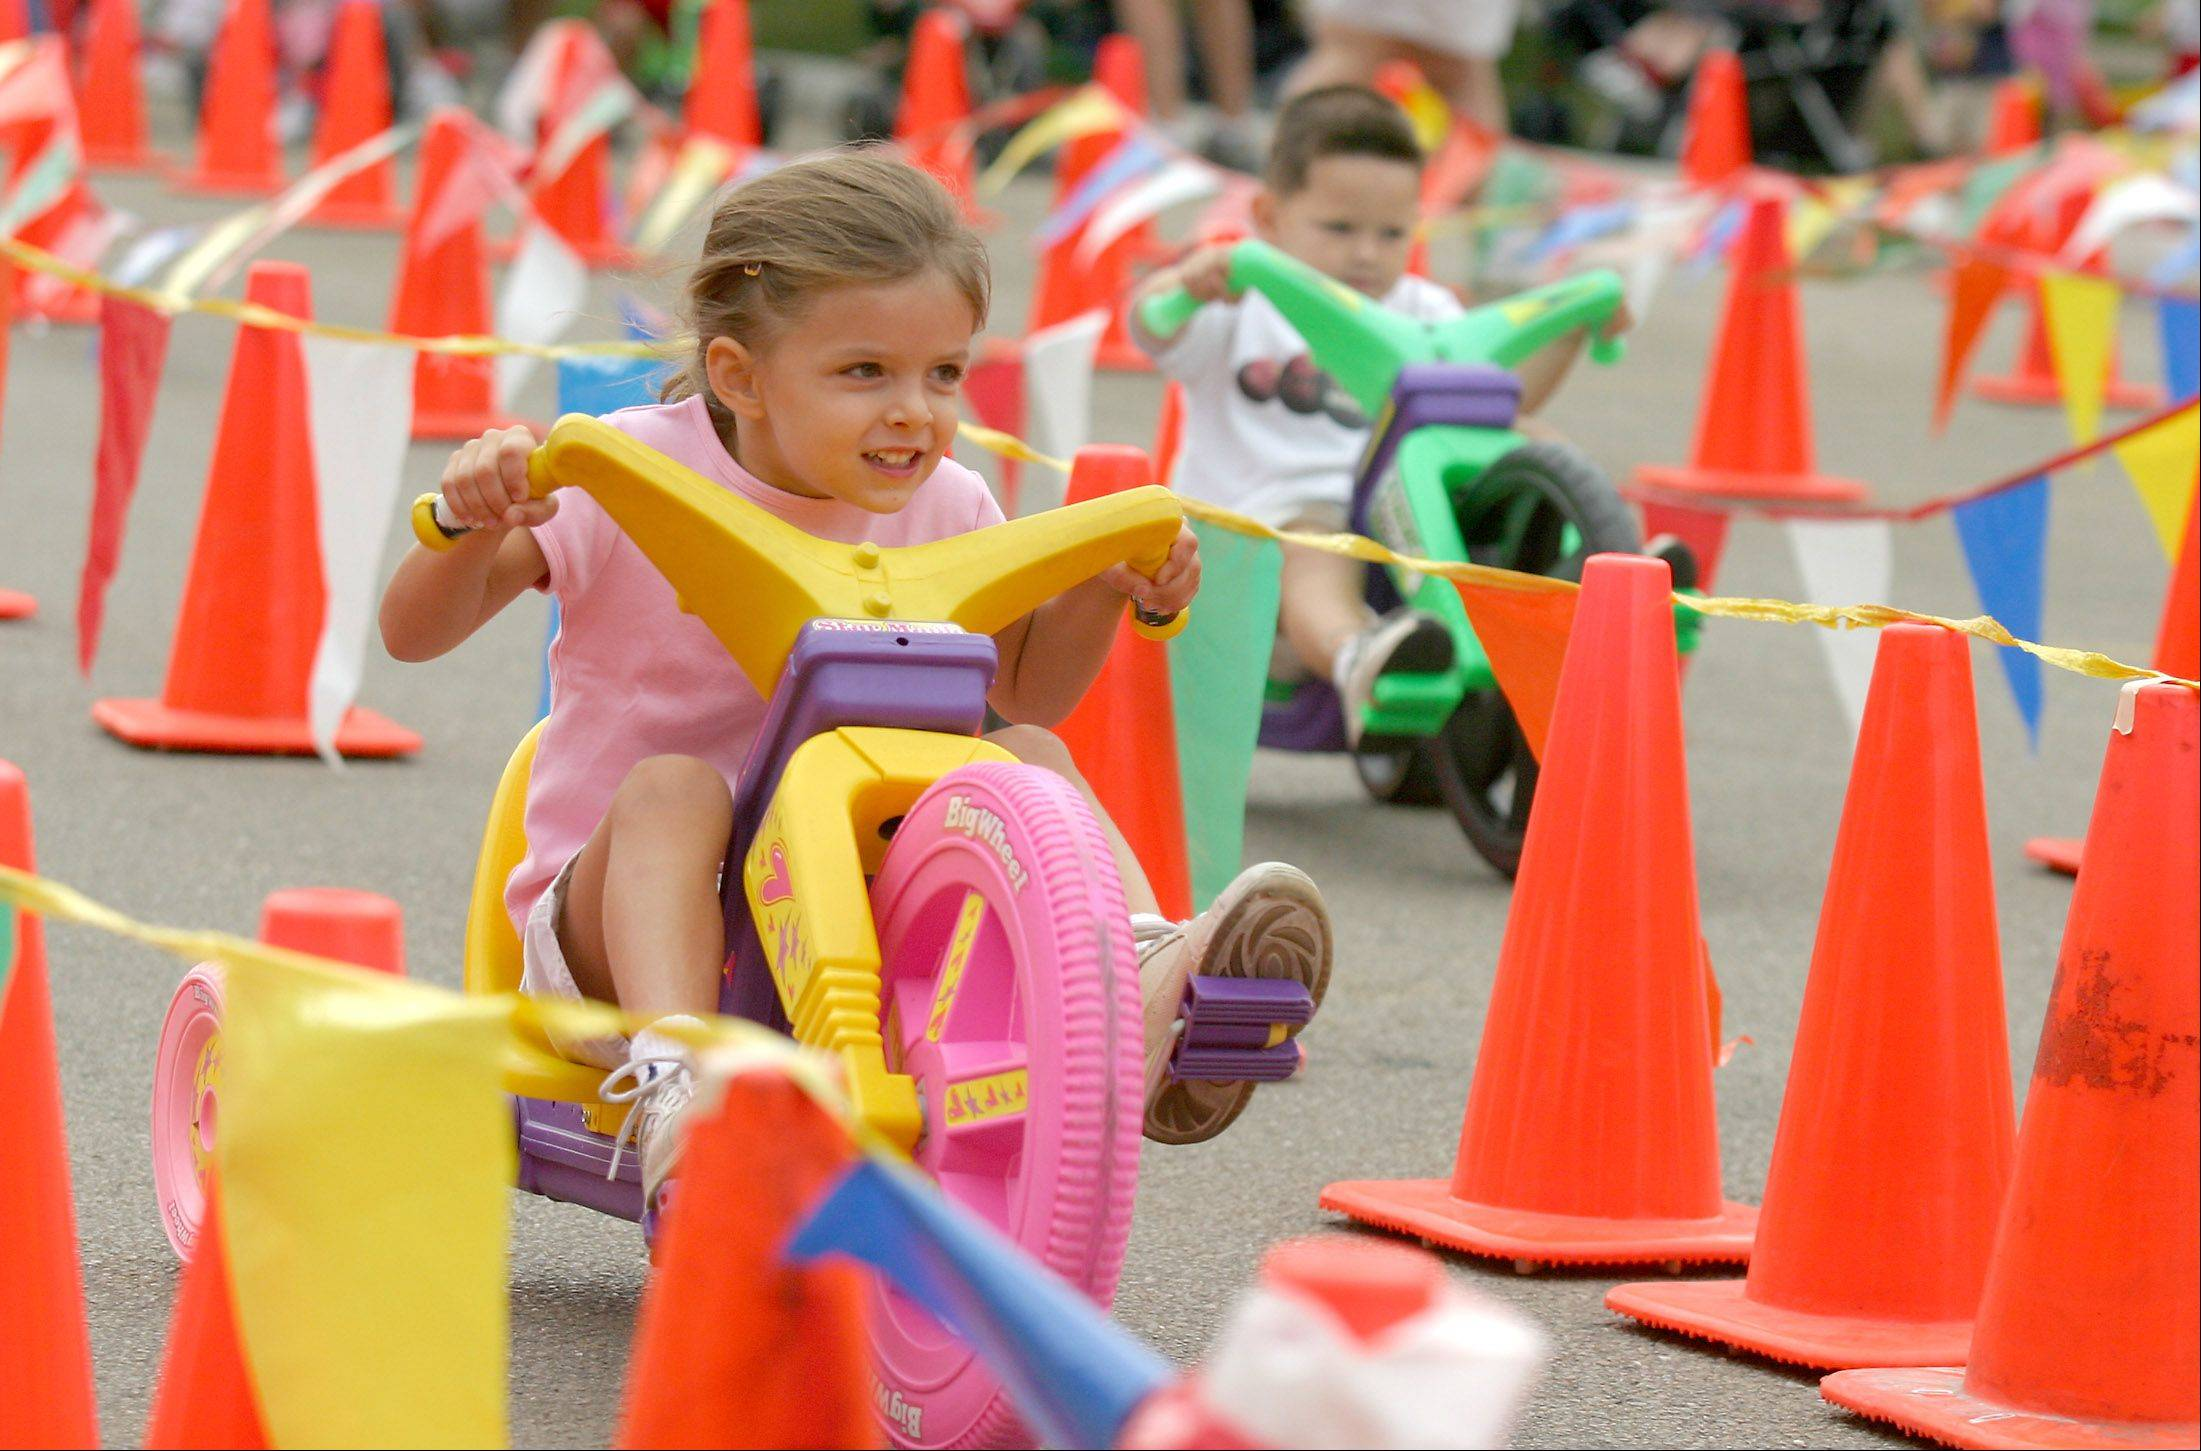 Last Fling's lineup of special events includes a Big Wheel race.